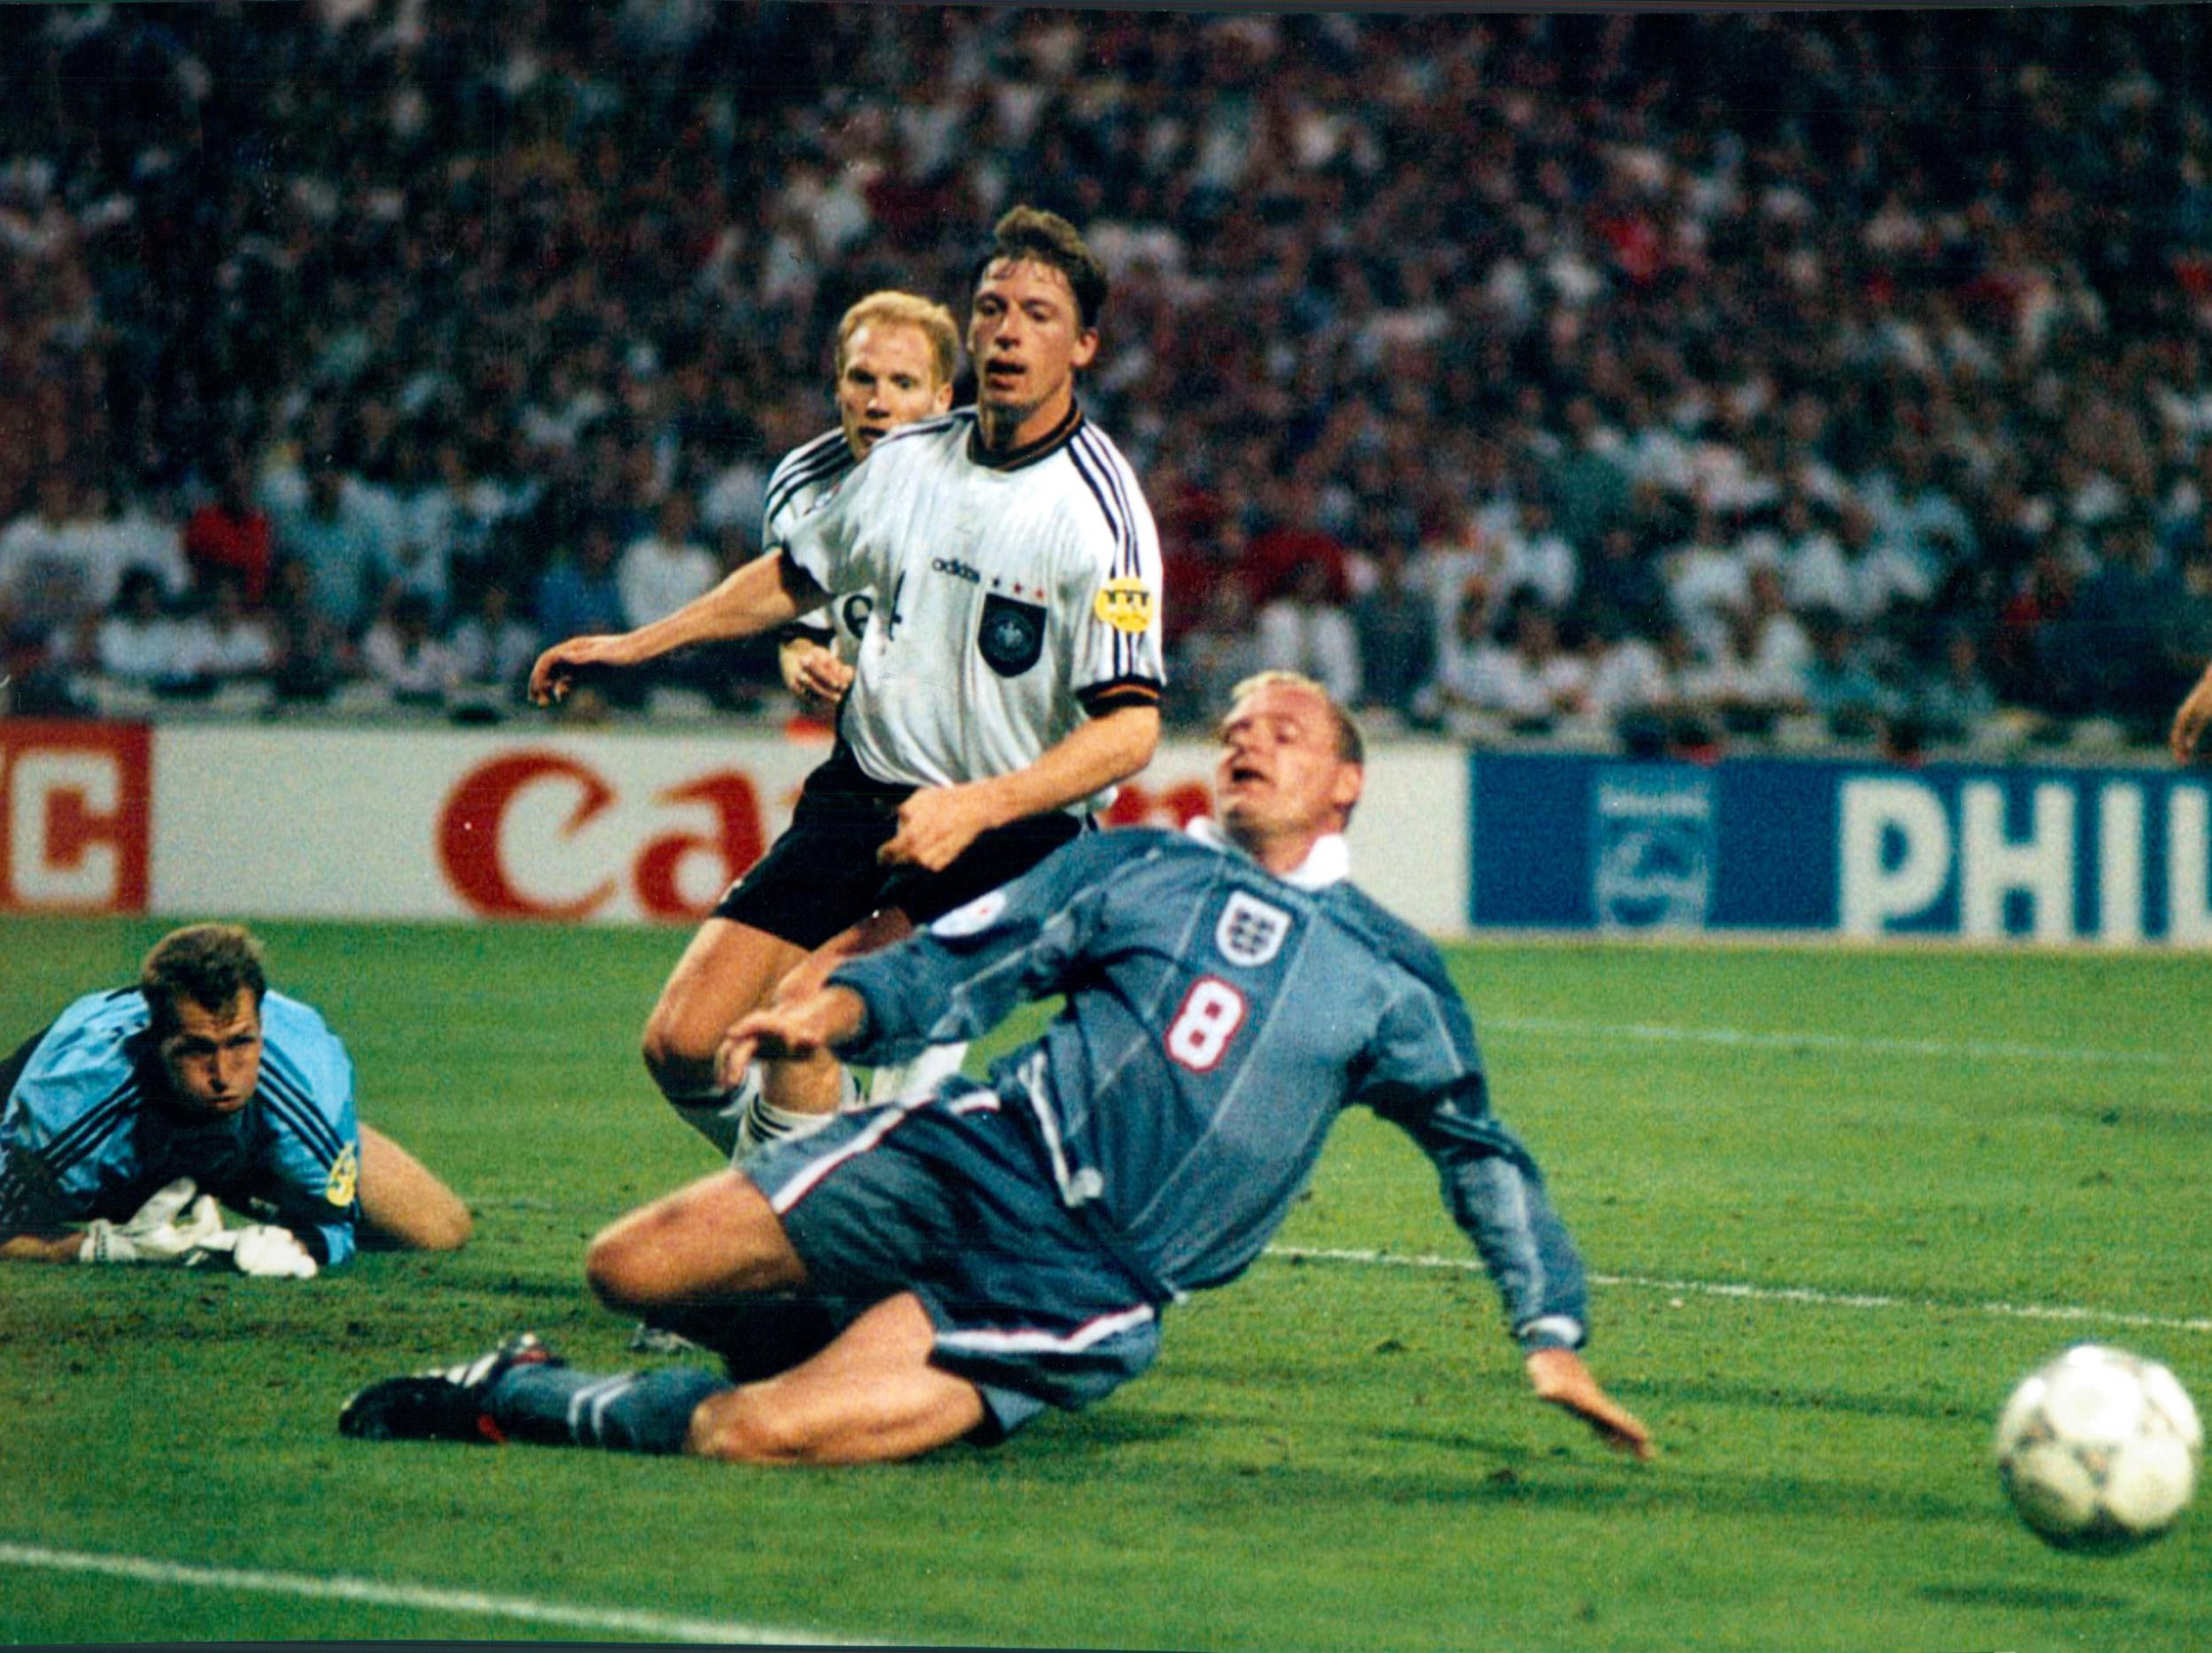 Euro 96 and the two sides to any major tournament | The Independent